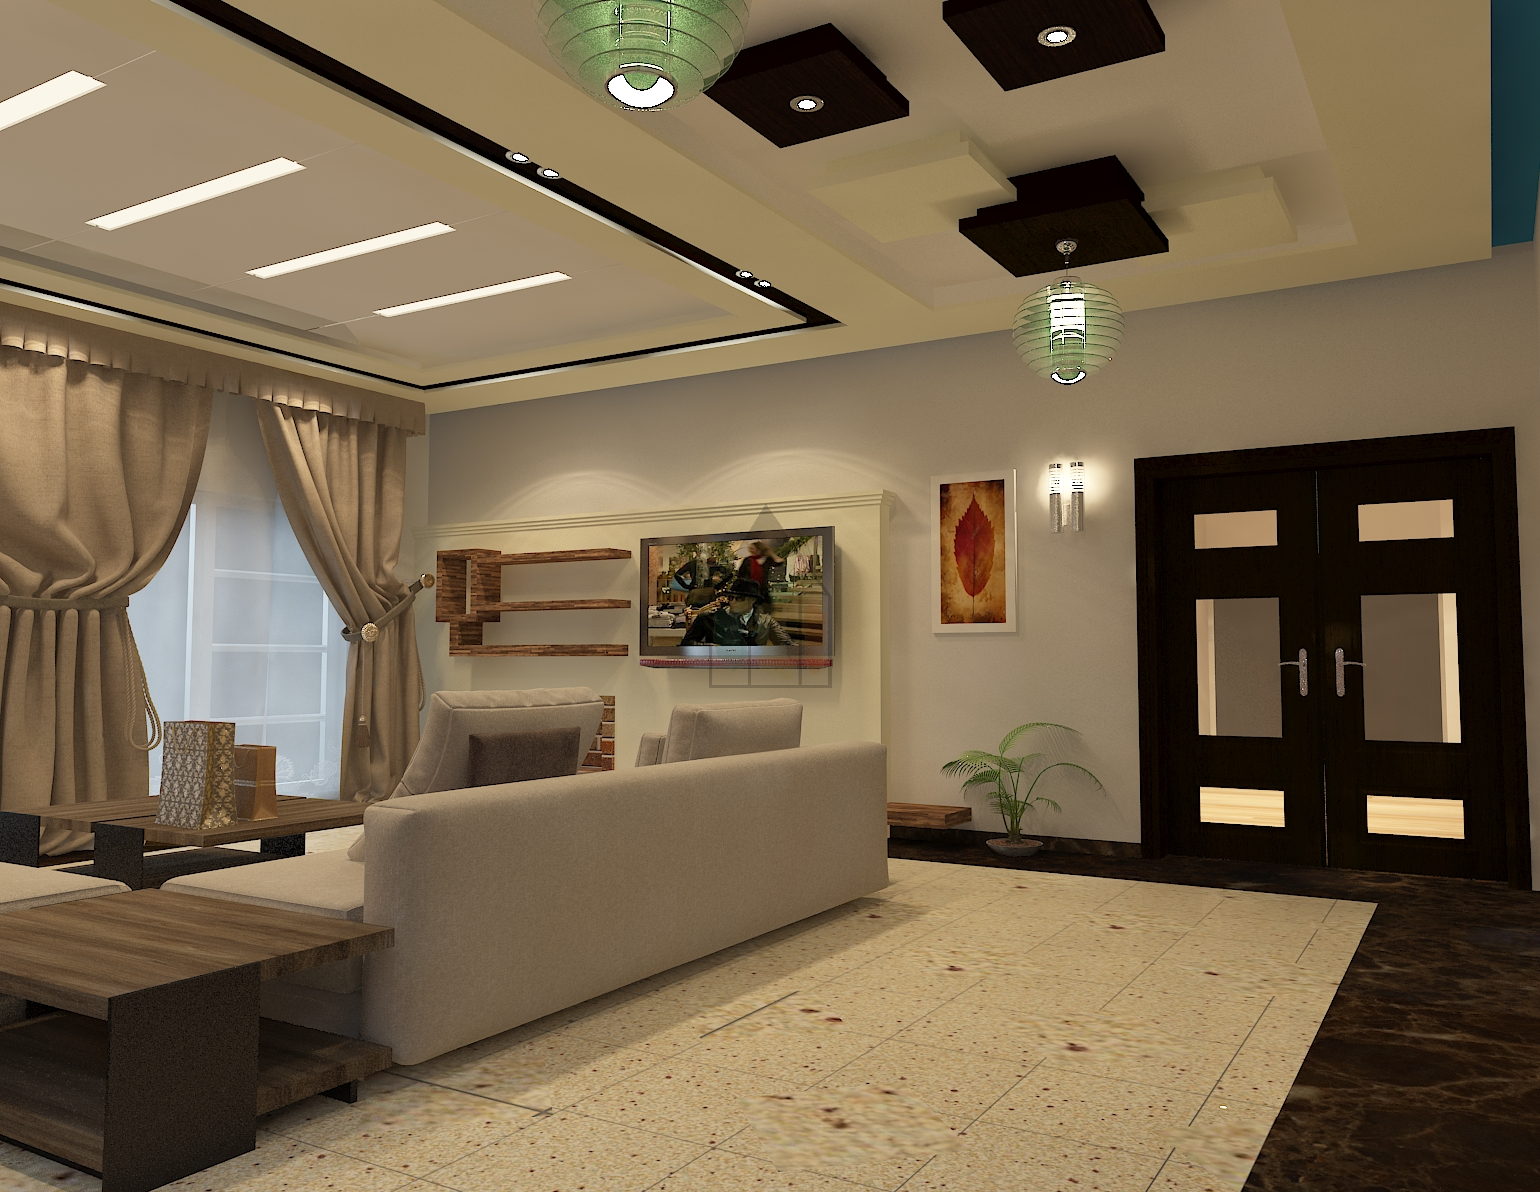 Design Lounge Buiten Tv Lounge Designs In Pakistan From Many Other Tv Lounge